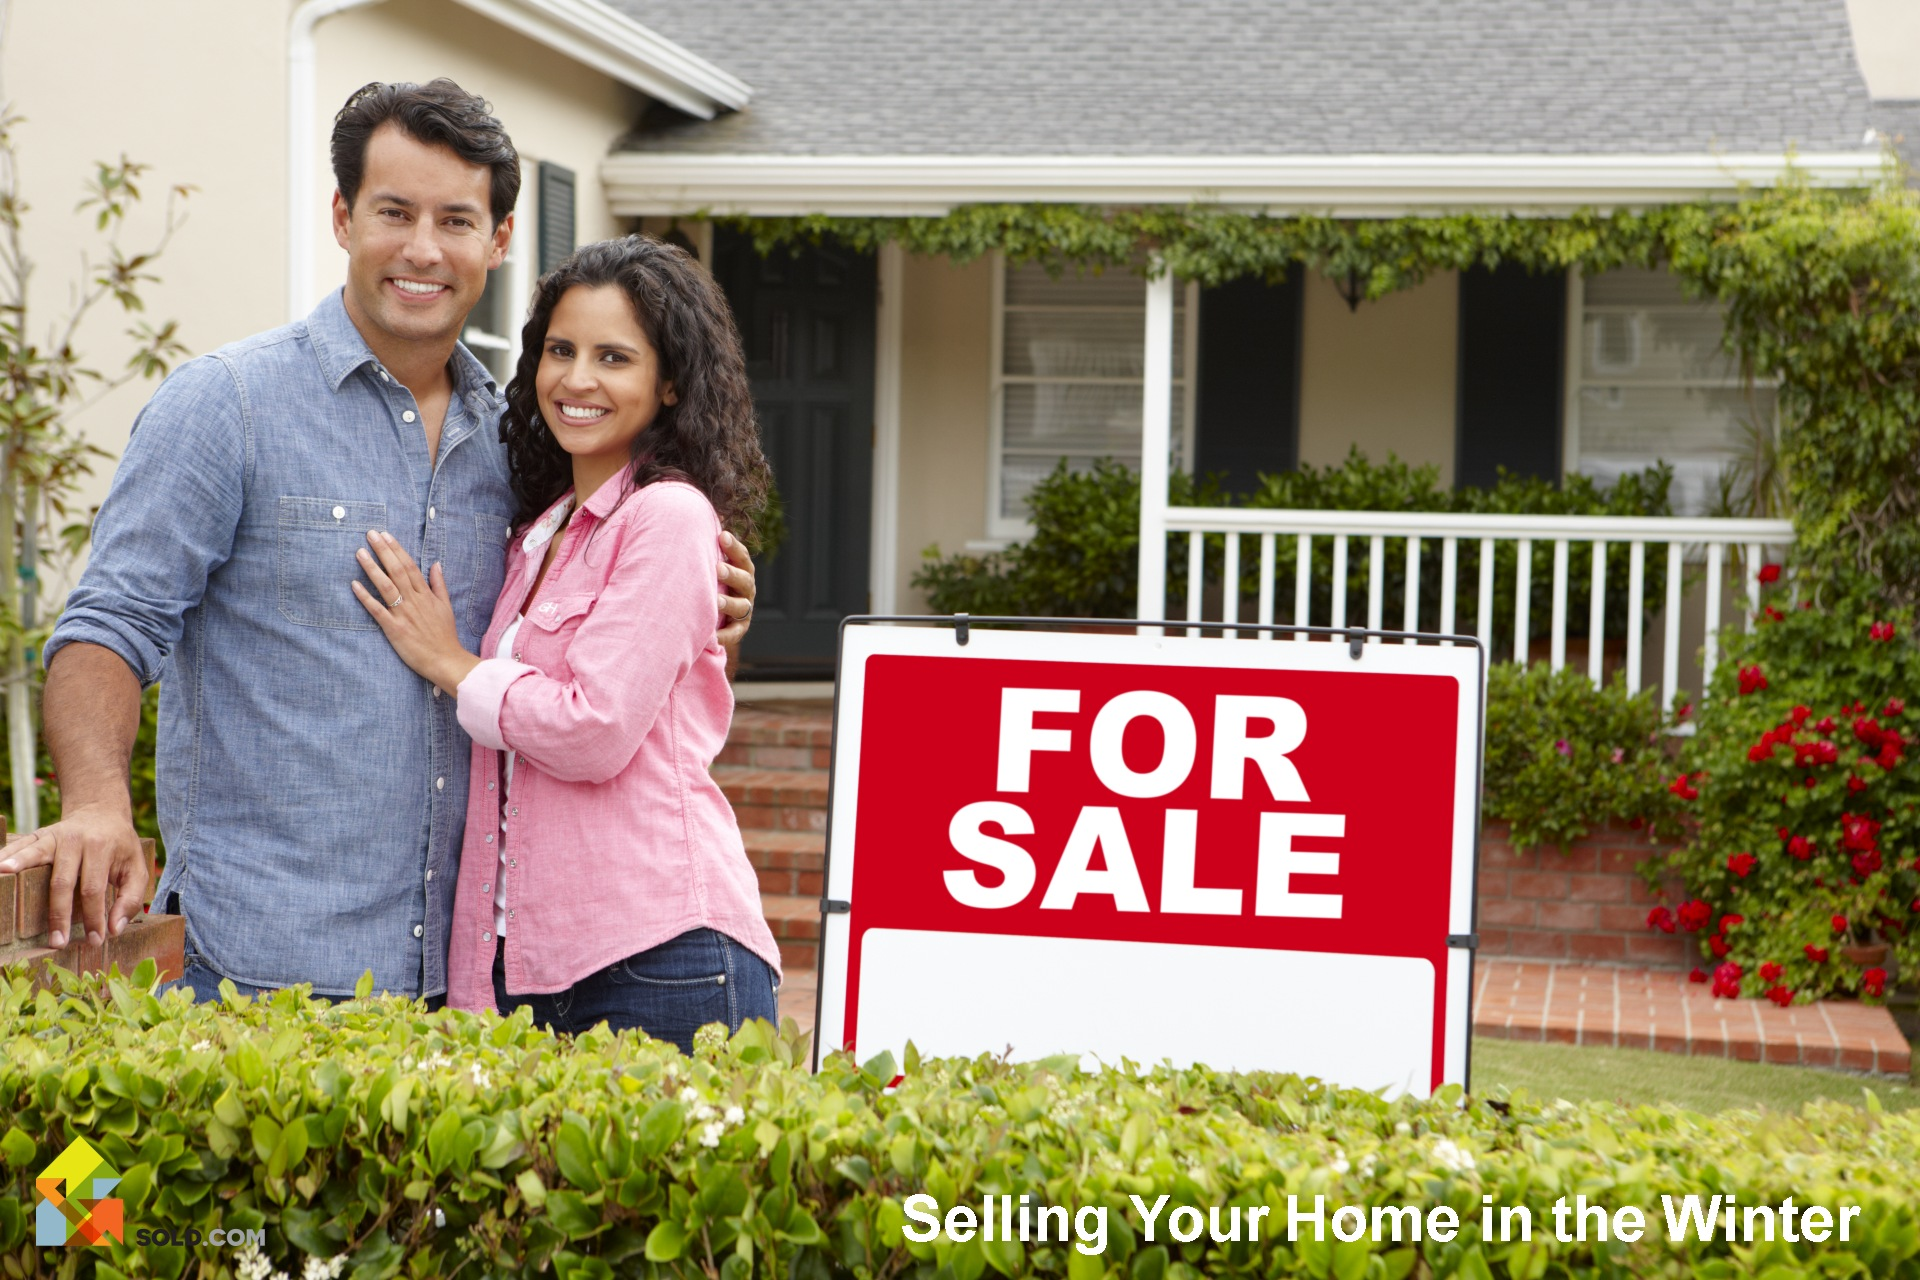 6 Myths About Selling Your Home in the Winter